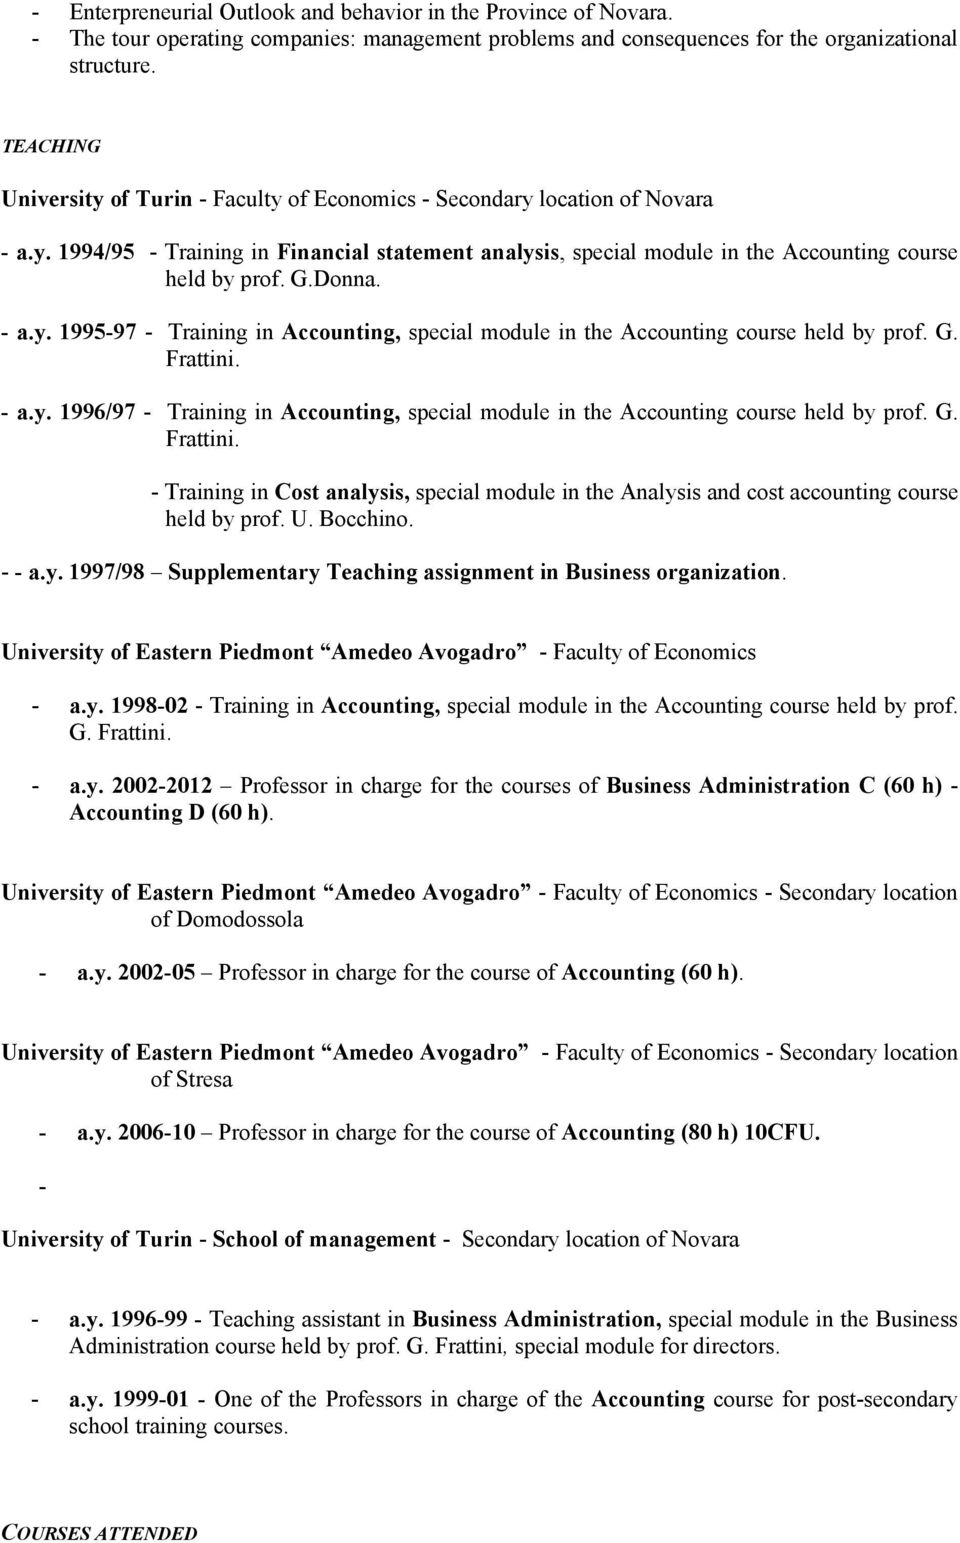 Donna. - a.y. 1995-97 - Training in Accounting, special module in the Accounting course held by prof. G. Frattini. - a.y. 1996/97 - Training in Accounting, special module in the Accounting course held by prof.